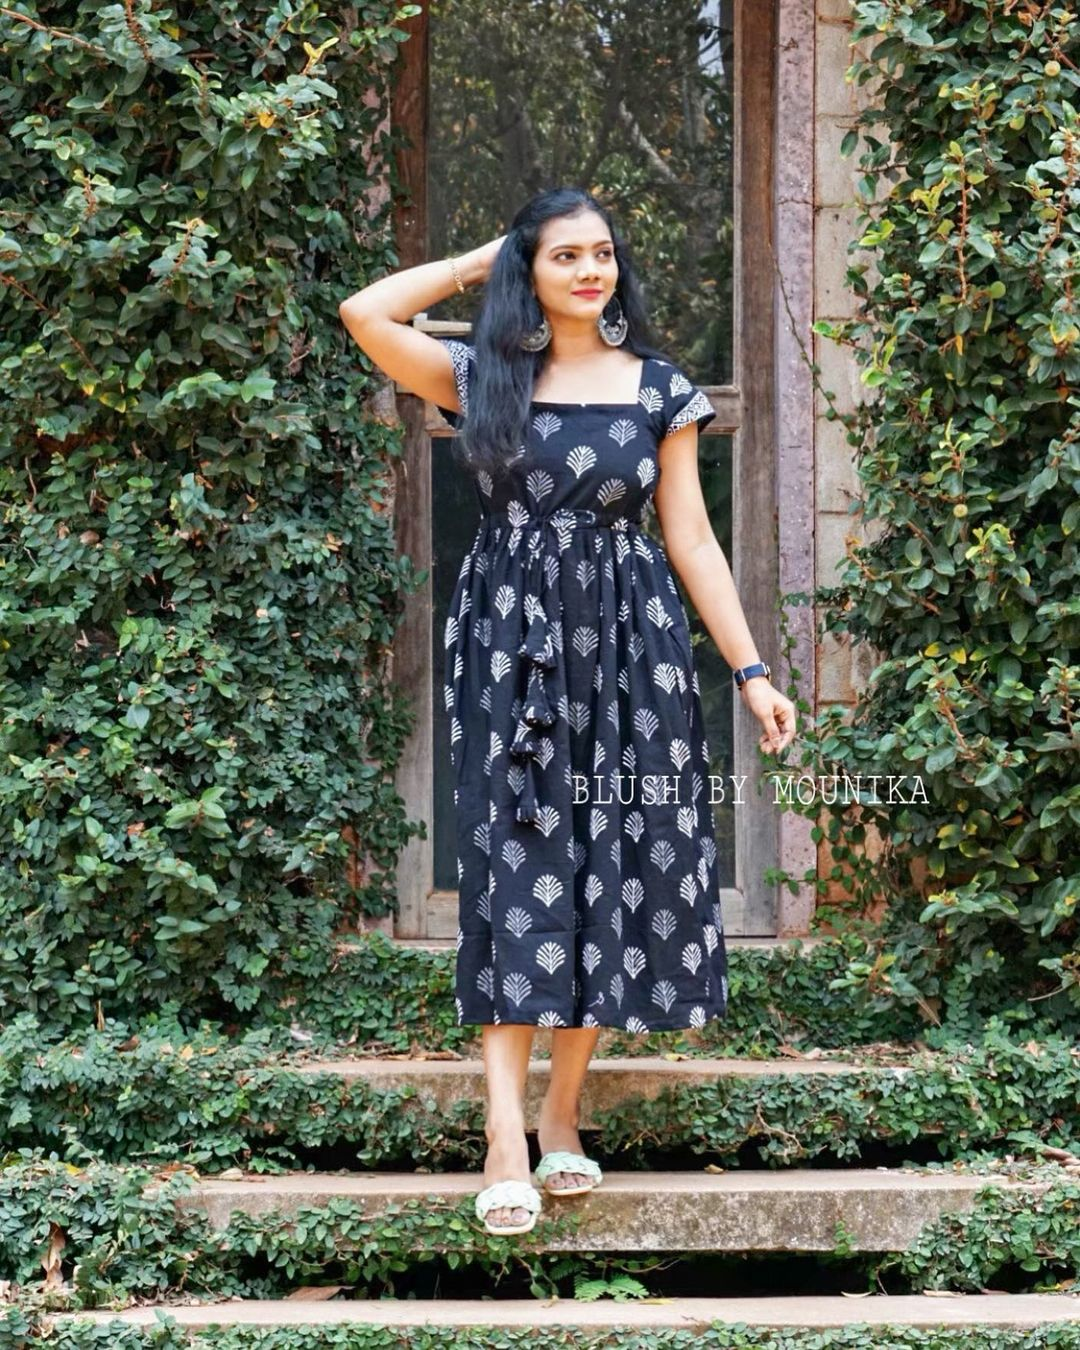 Bringing some Summer Midi Combo dresses in Blush by Mounika .